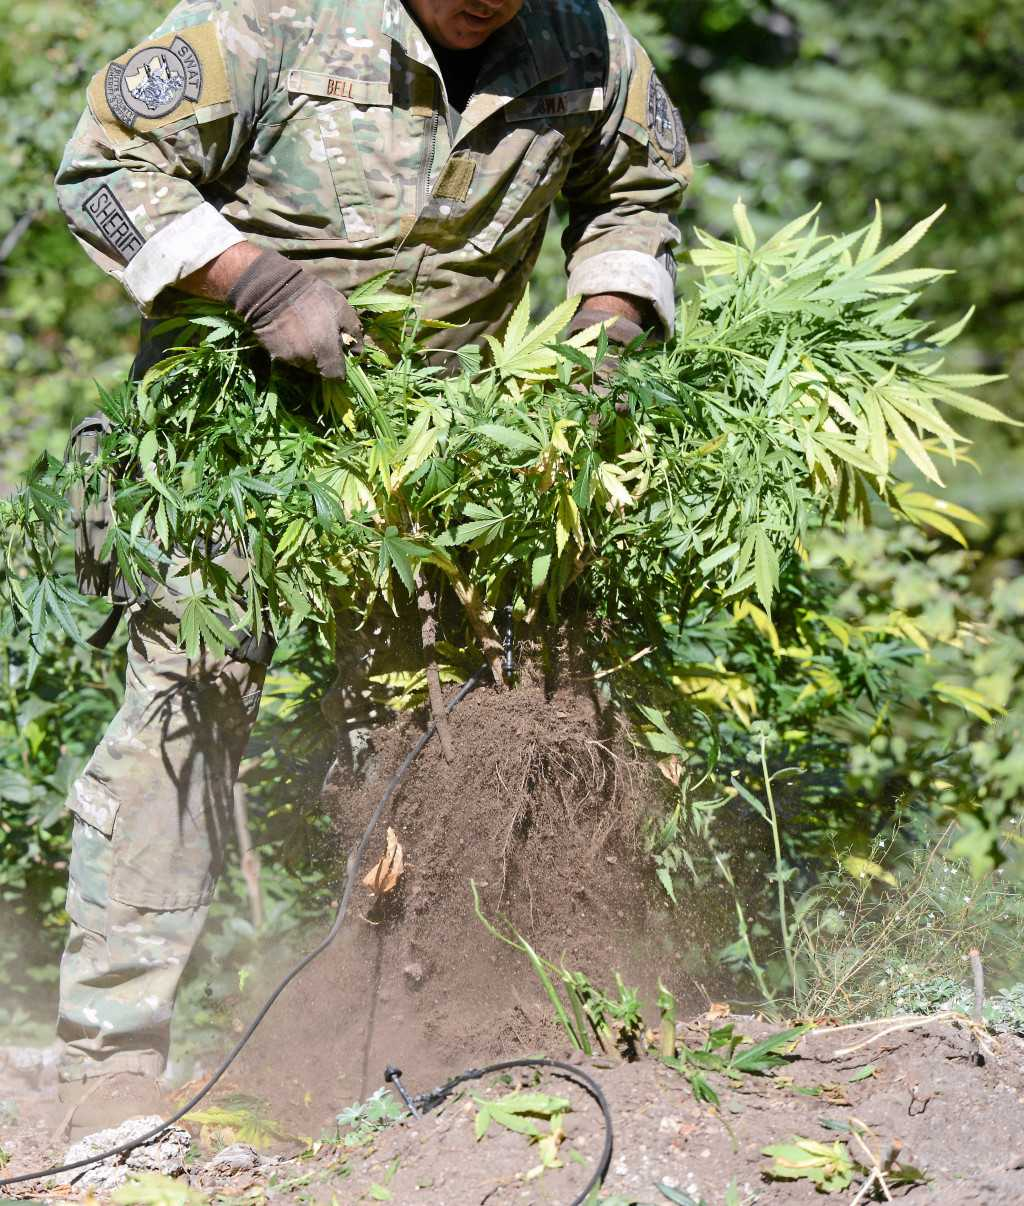 National Guard troops headed north to tackle illegal pot grows, Gavin Newsom announces